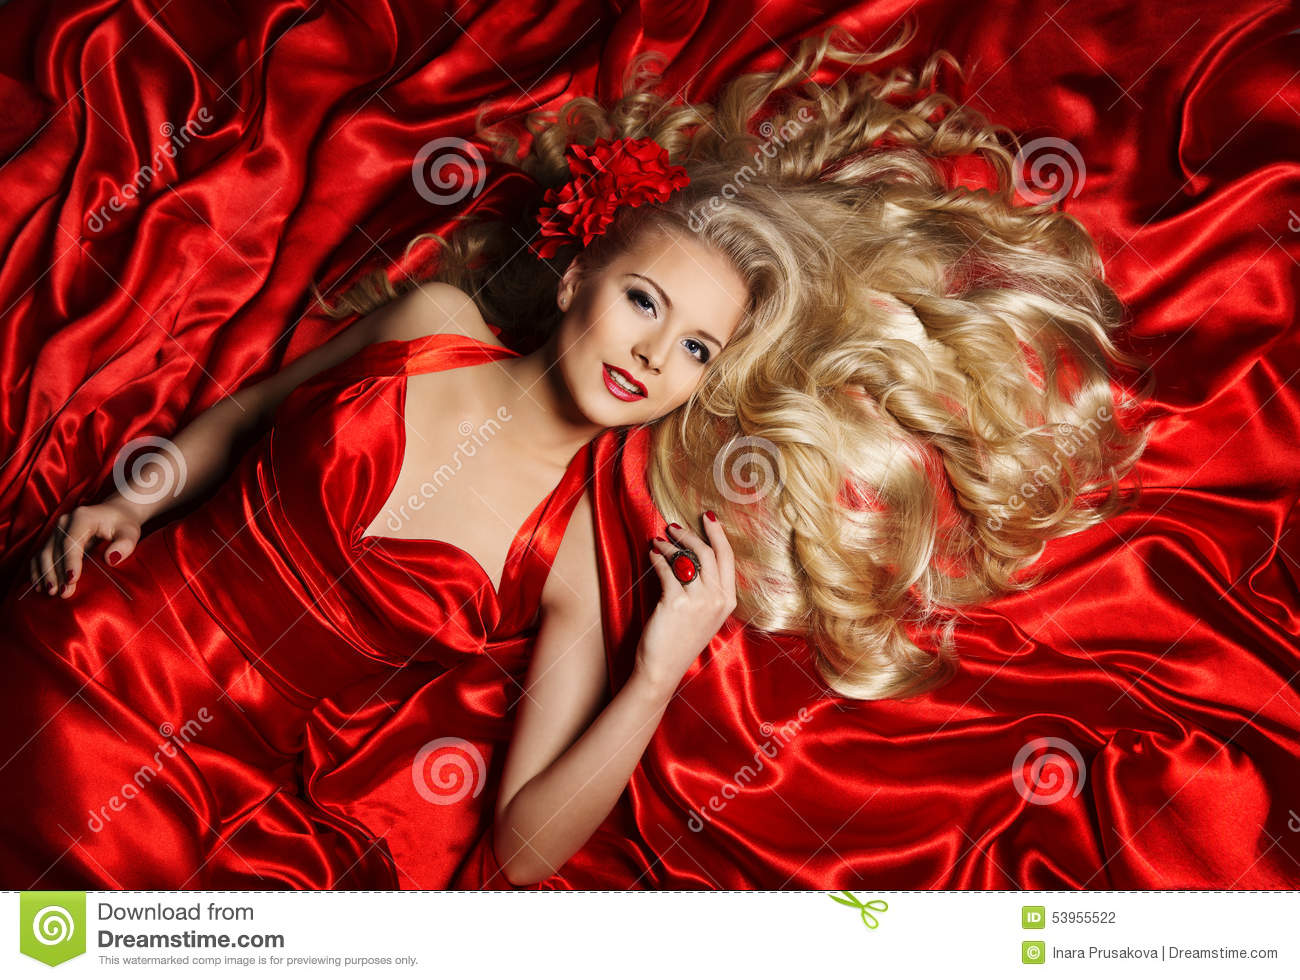 Hair Model, Fashion Woman Blonde Lying on Red Silk Cloth